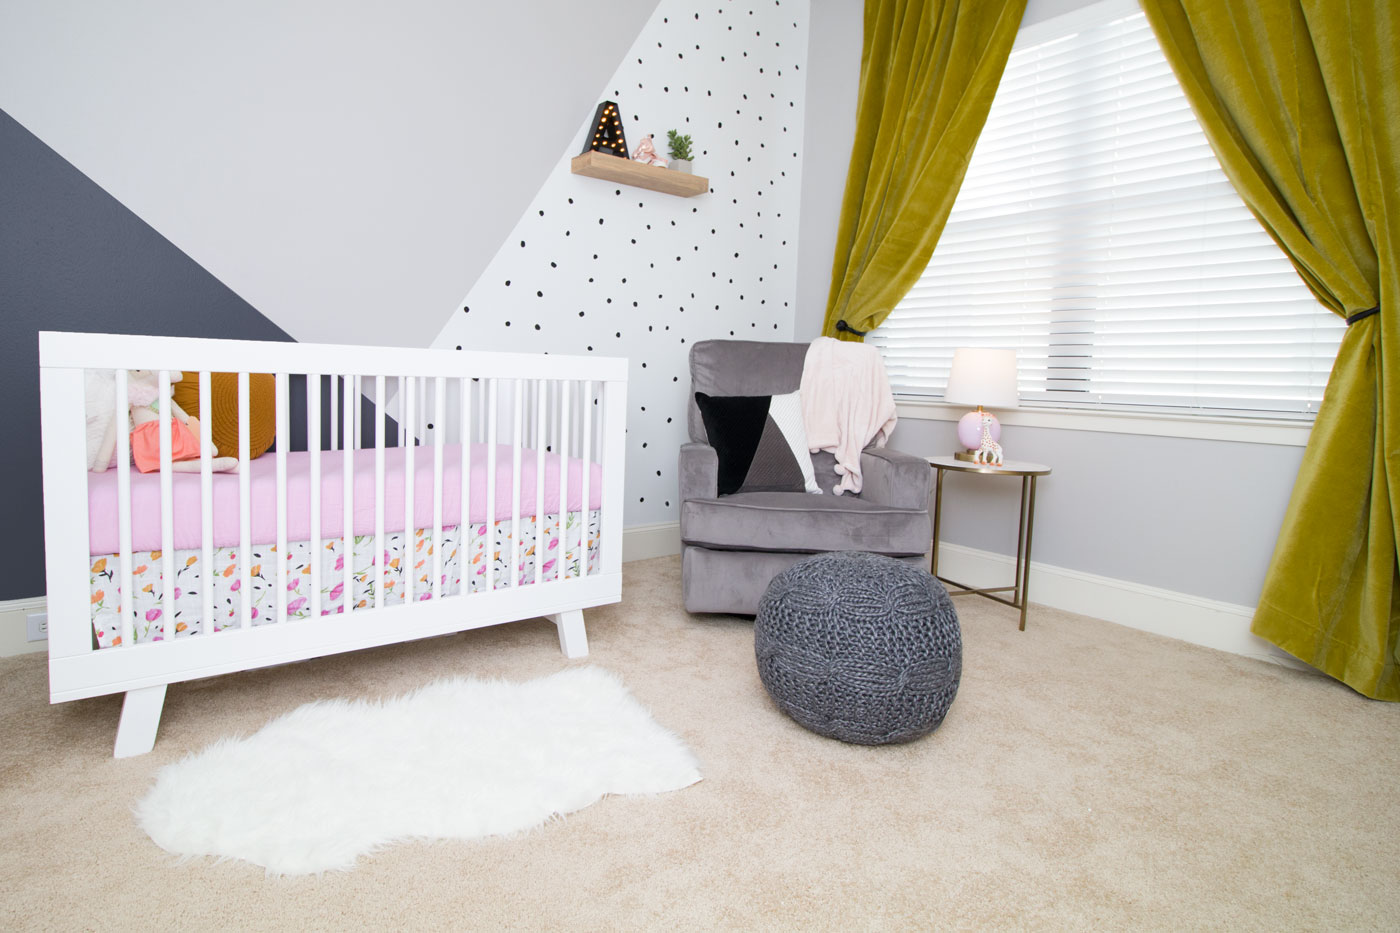 Finally, The Chartreuse, Matte Velvet Drapes Brought So Much Warmth And  Coziness To The Zamore Nursery, While Pulling The Green/mustard Tones  Together From ...